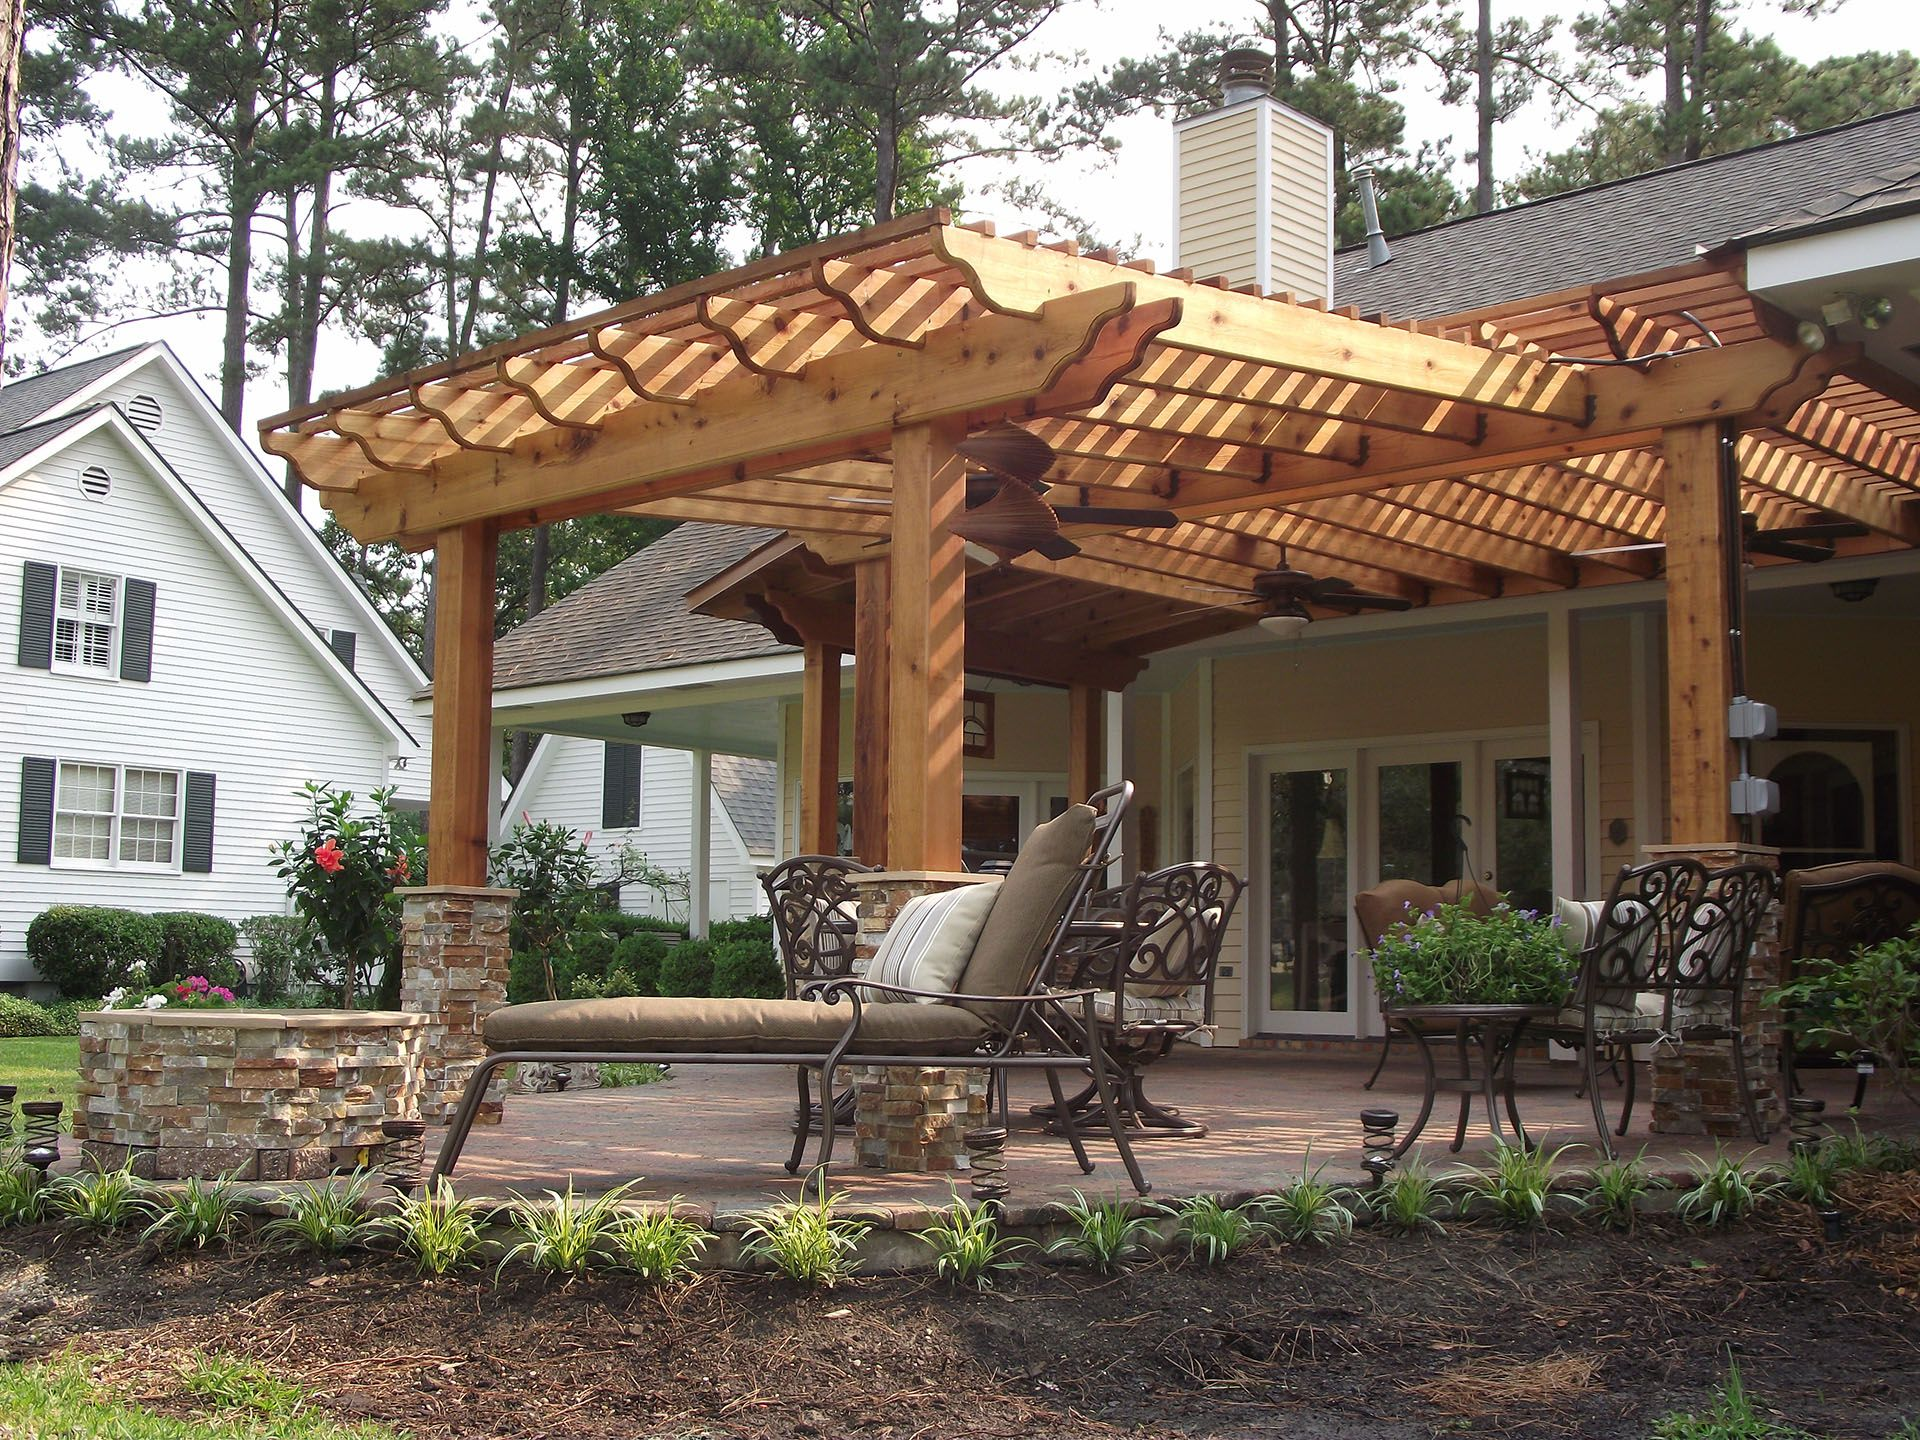 Pergola designs professional hardscape and landscape 3d design software bbb rating a - Eigentijds pergola design ...